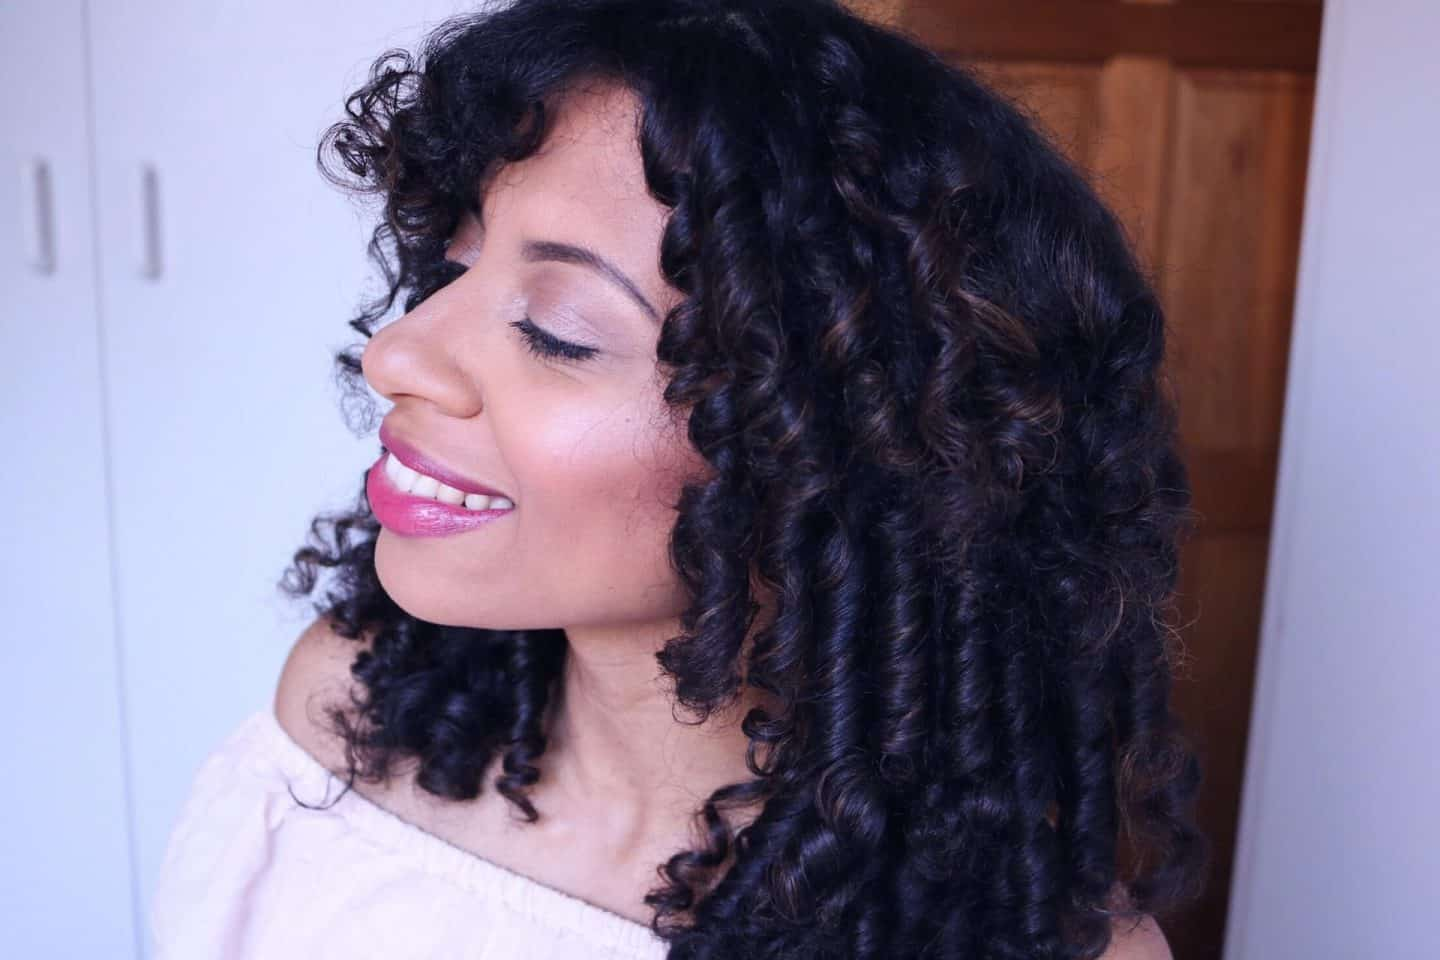 eleanor j'adore - Heatless Curls - Easy, Flexi-rod Set on Natural Hair with Design Essentials